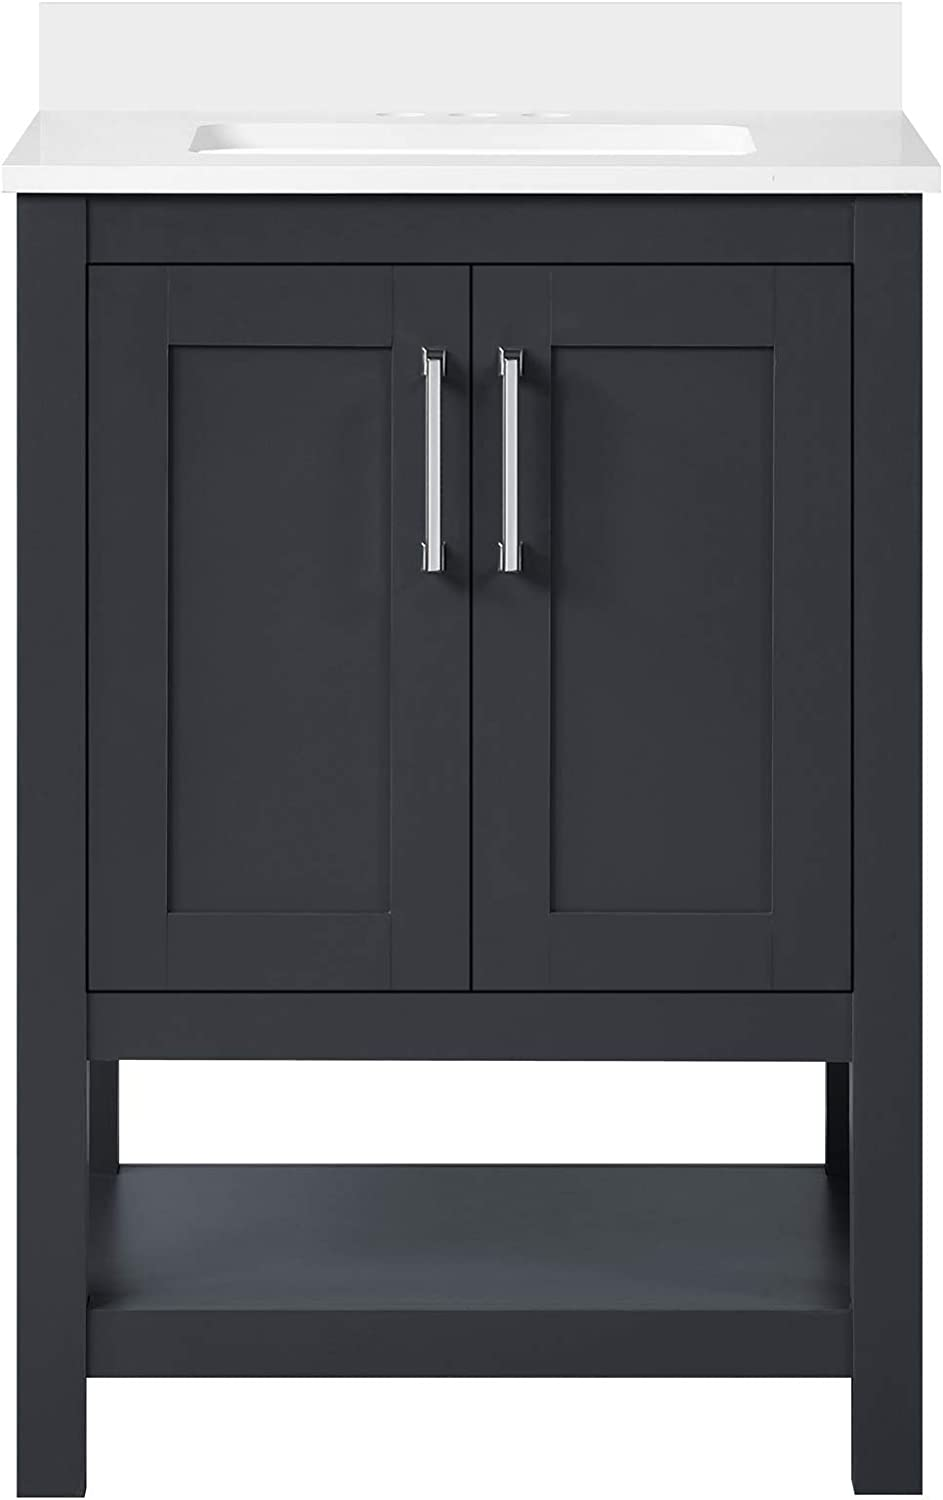 Ove Decors Vegas 24 Inch Bathroom Vanity Combo Freestanding Bath Cabinet Modern Single Sink With Cultured Marble Countertop Fully Assembled Backsplash Included Dark Charcoal Amazon Com